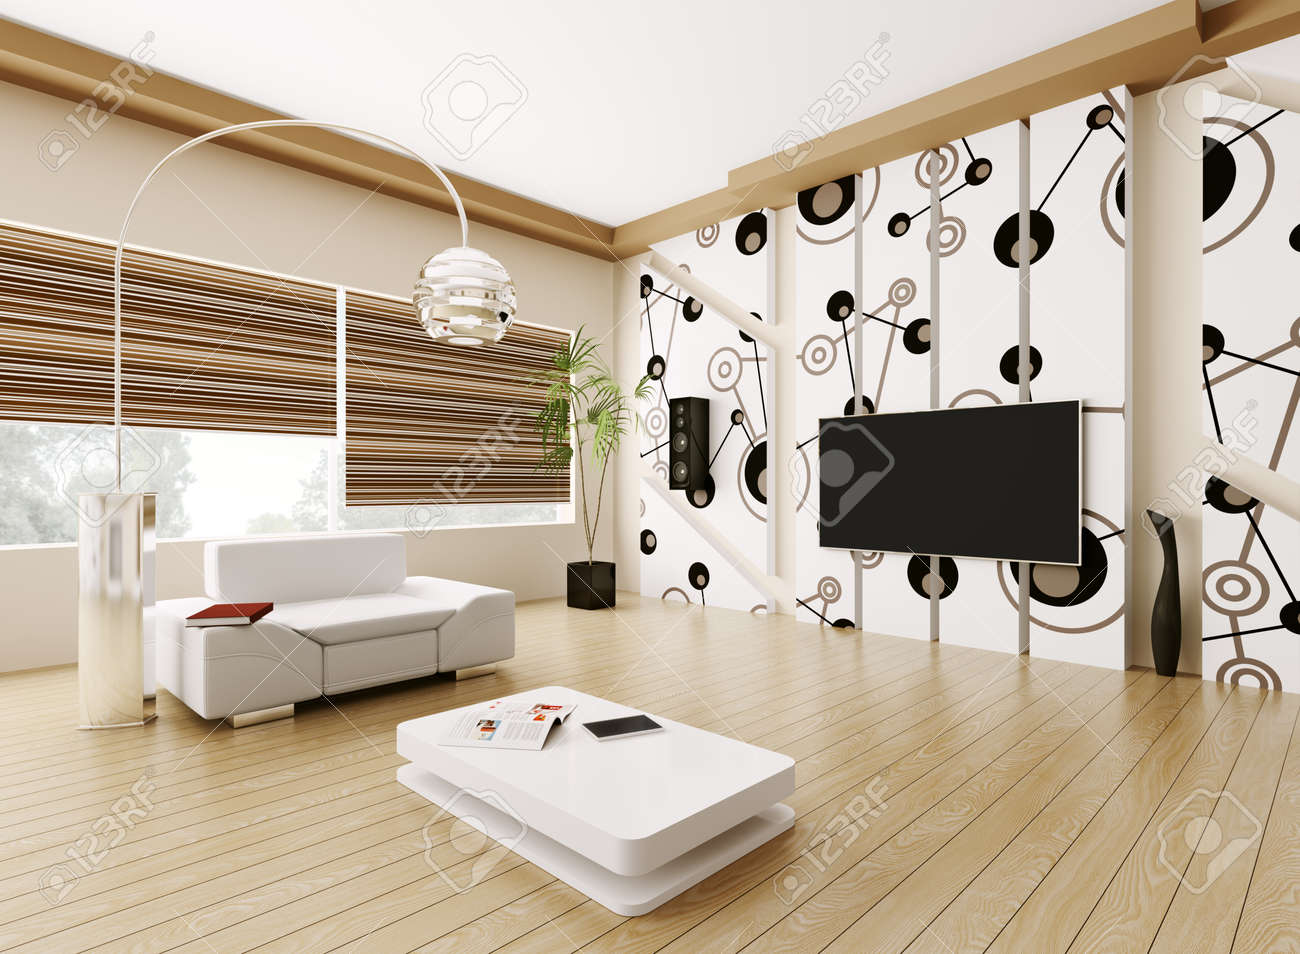 Interior Of Modern Living Room 3d Render Stock Photo, Picture And ...